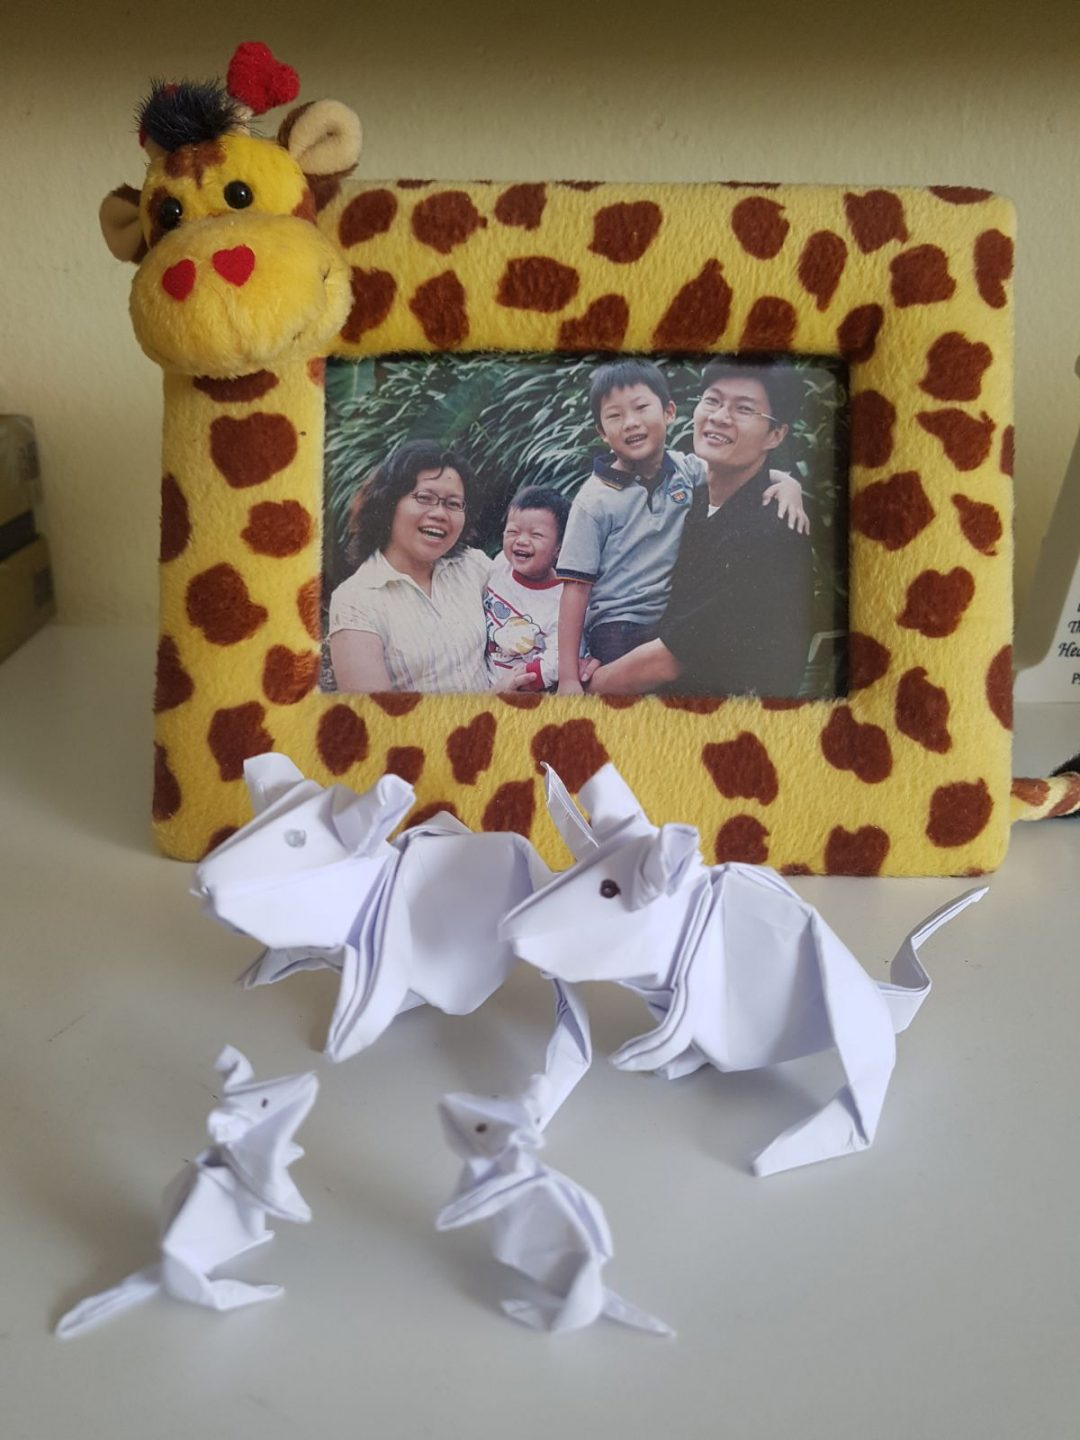 Some of the origami animals that Yeoh folds to give out to his clients, usually accompanied by a little blessing of joy. In the background is an old family photo of the couple and their two sons, now 15 and 20.